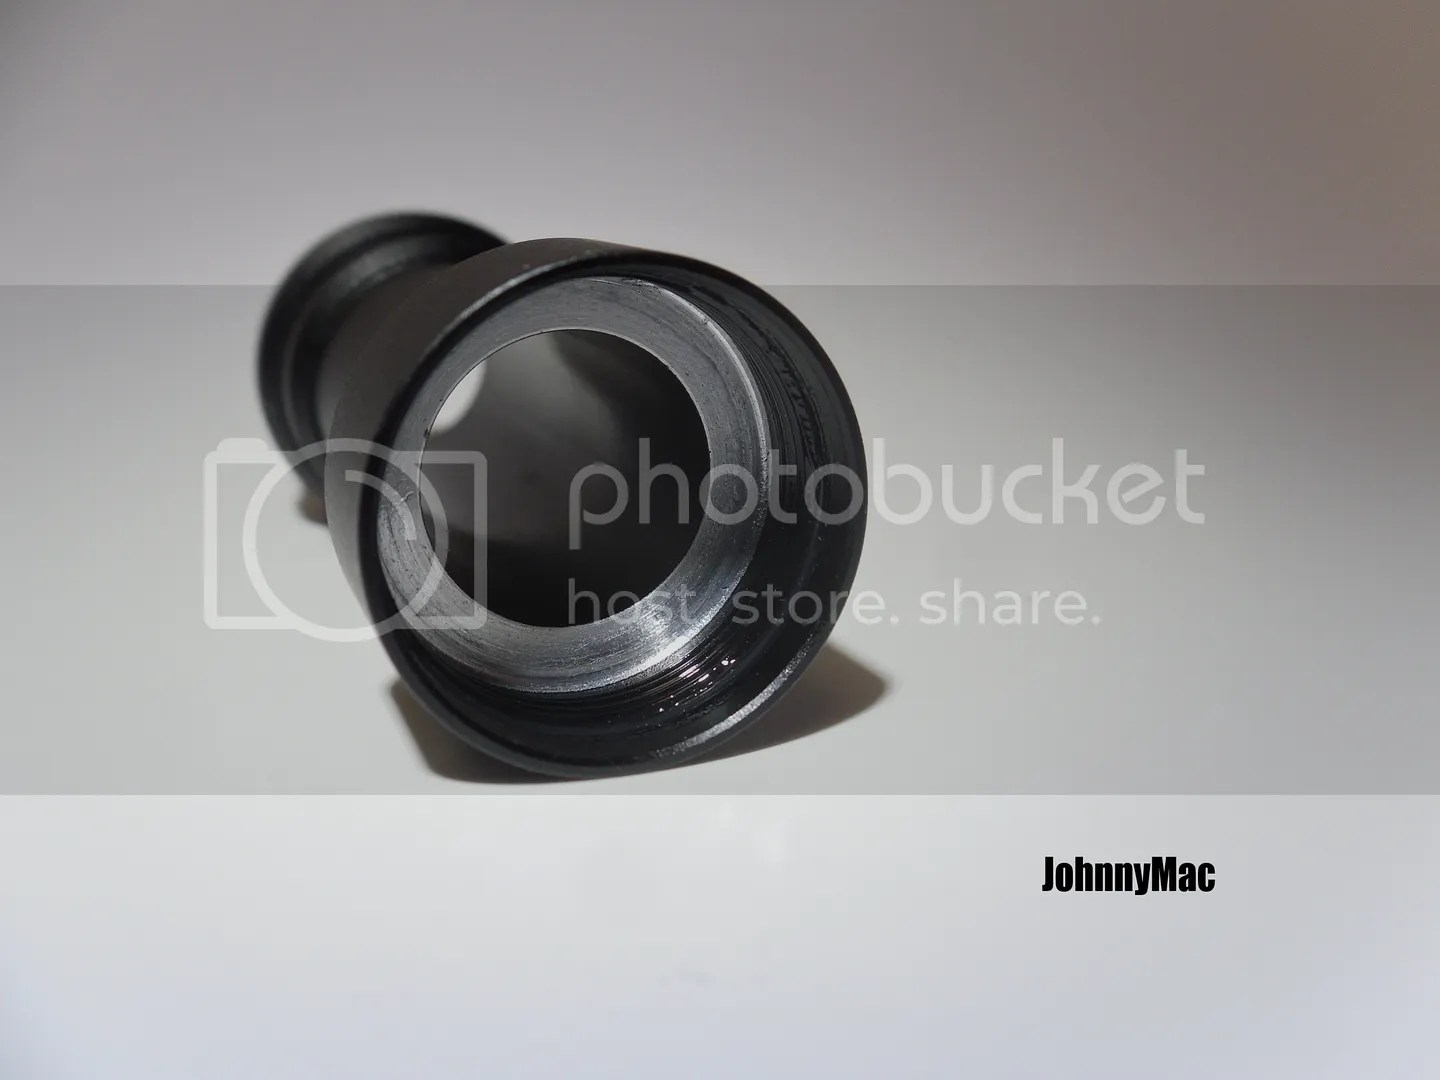 Front of battery extension tube photo 027_zpscf0684ba.png